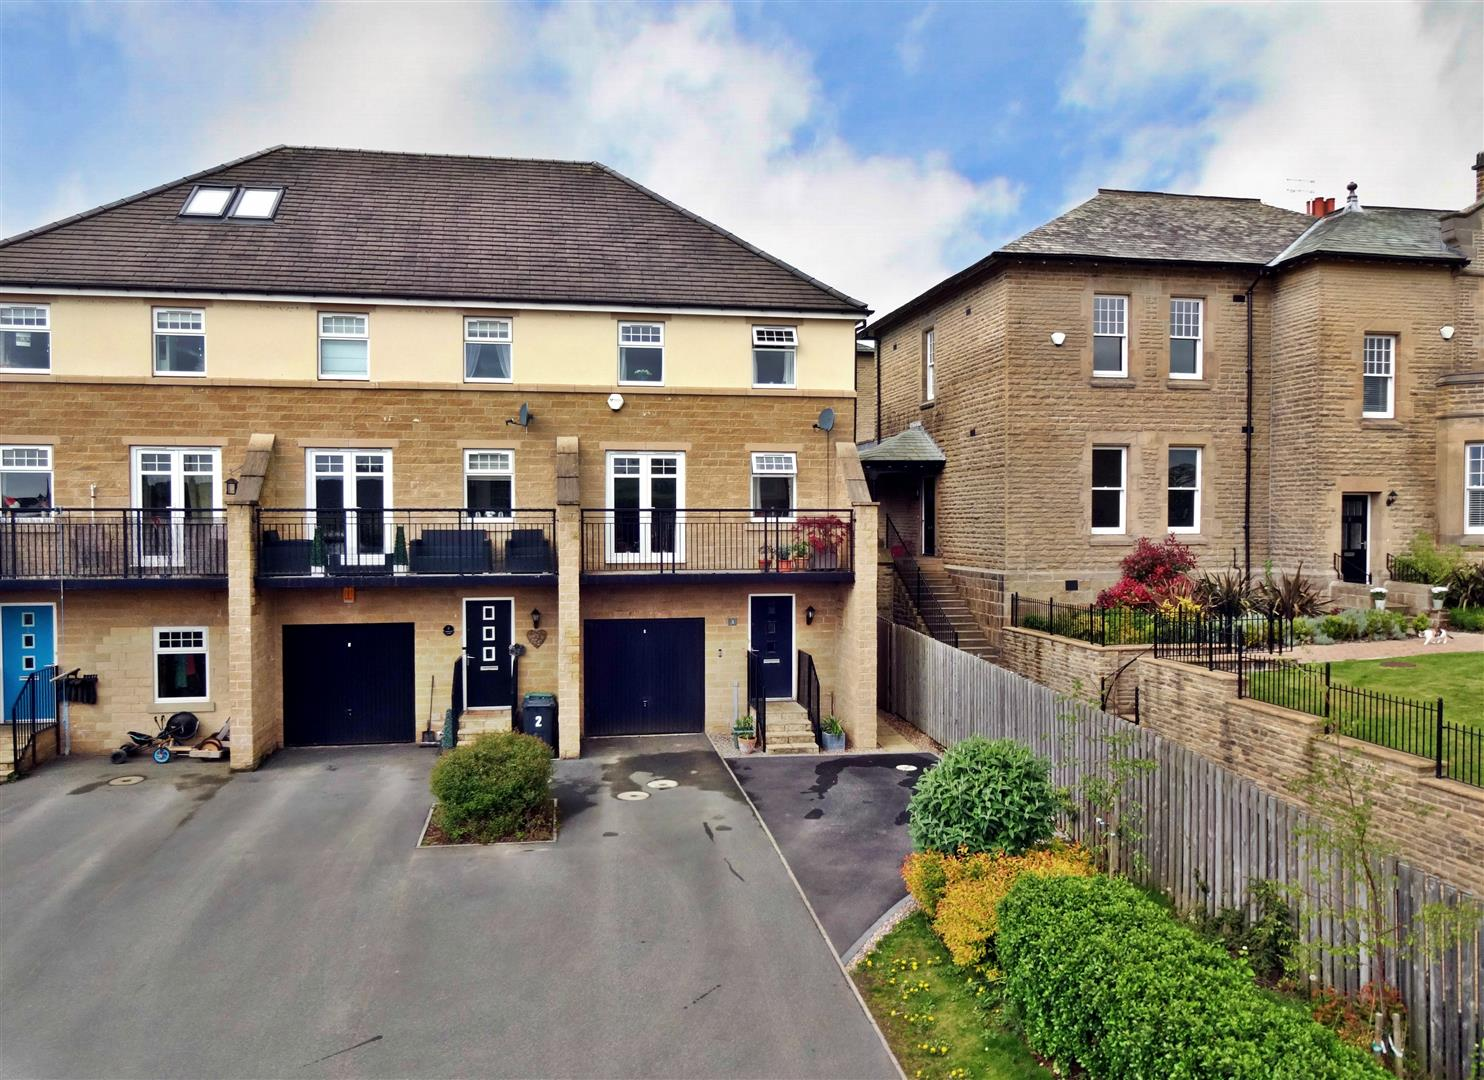 Norwood Court, Menston, LS29 6FQ